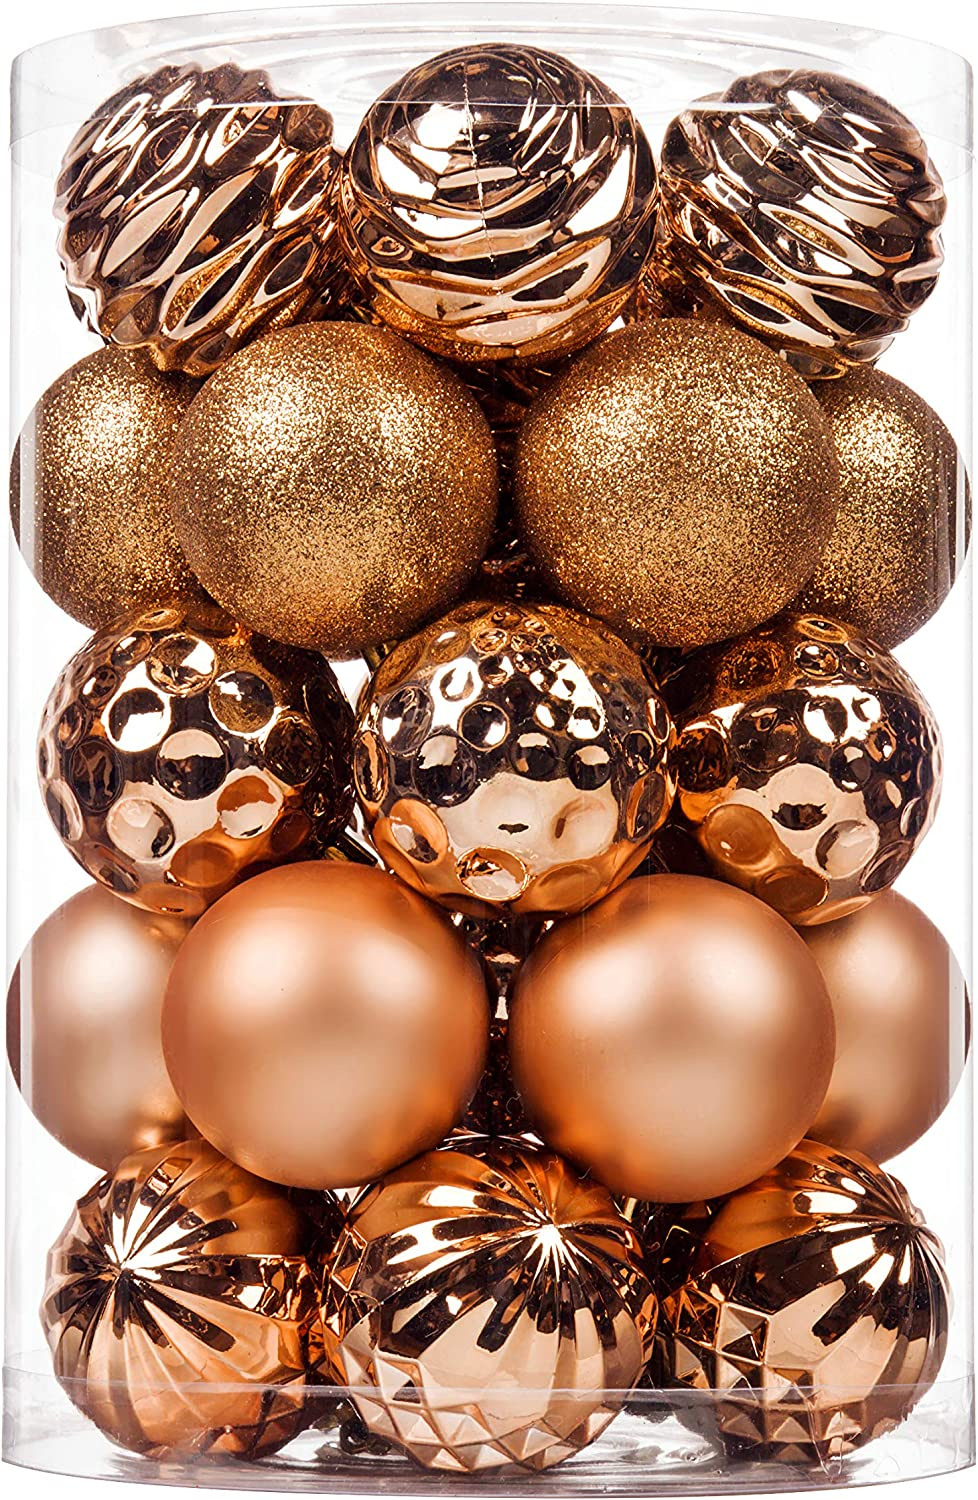 "SY CRAFT 34Ct Christmas Ball Ornaments for Xmas Tree Shatterproof Christmas Decorations Hanging Ball Small for Holiday Party Decoration,Tree Ornaments 2.36""(60mm Rose Gold)"